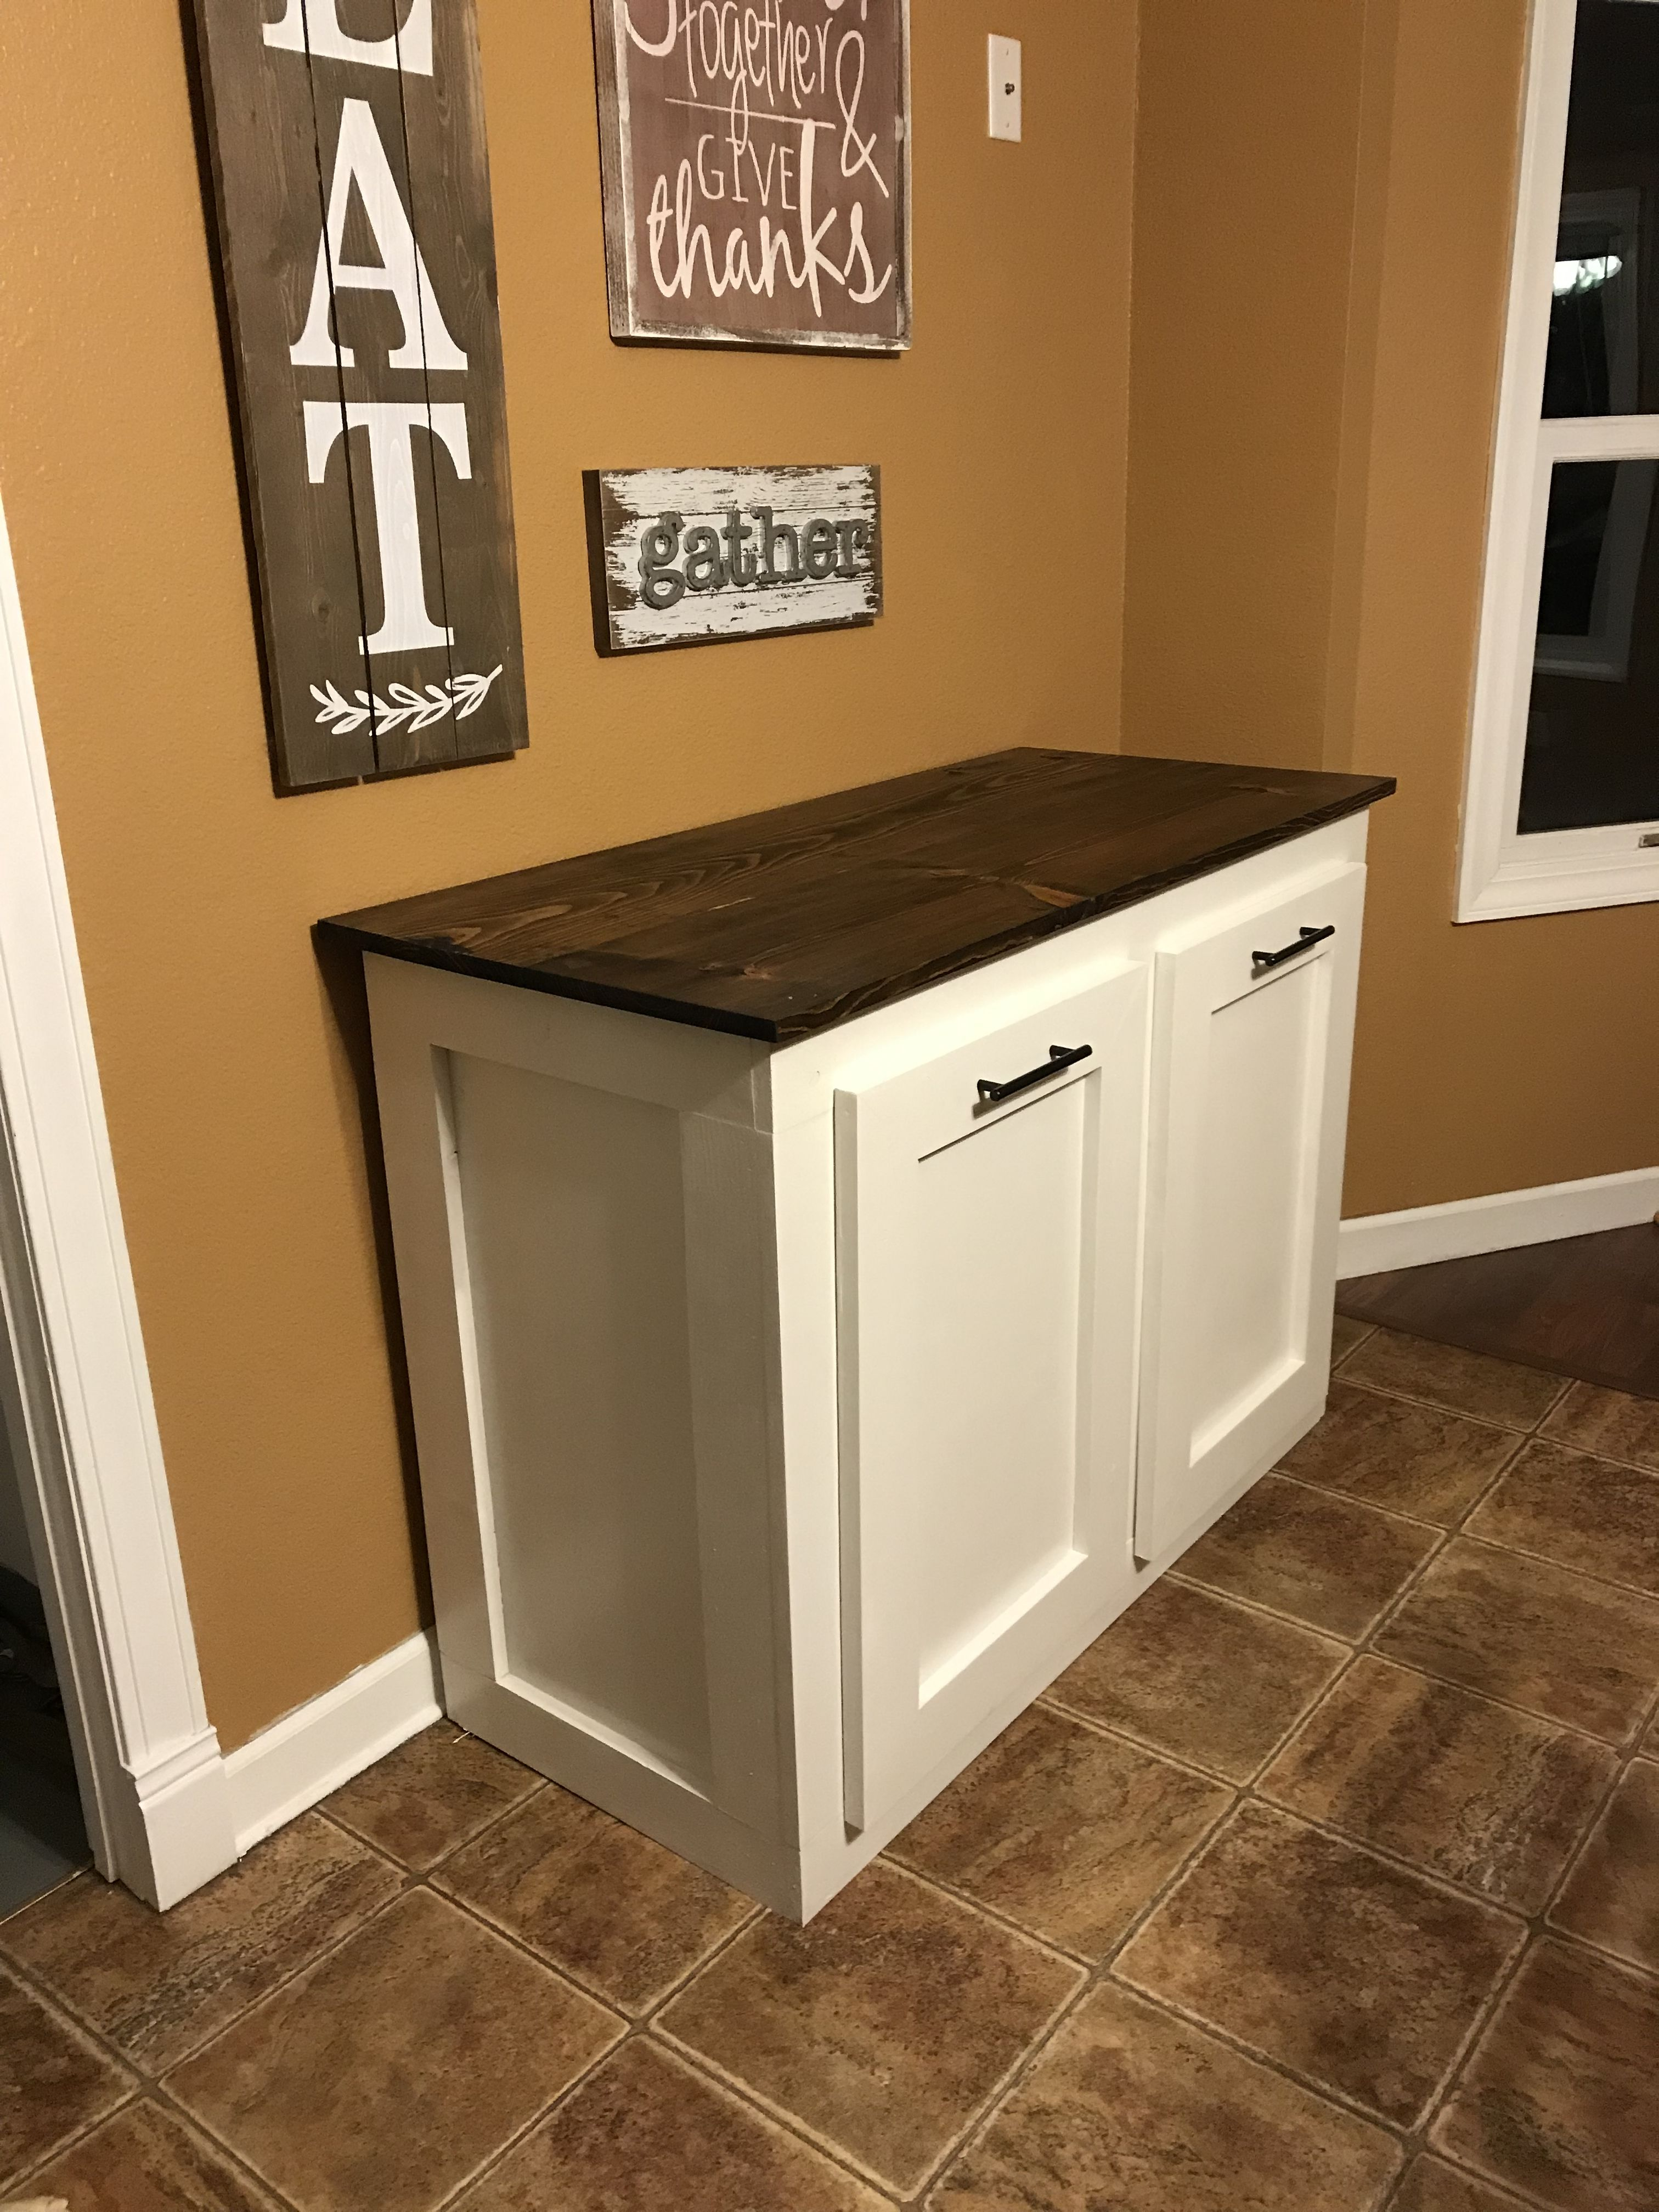 Double Trash Can Holder Kitchen Trash Cans Trash Can Cabinet Kitchen Cabinets